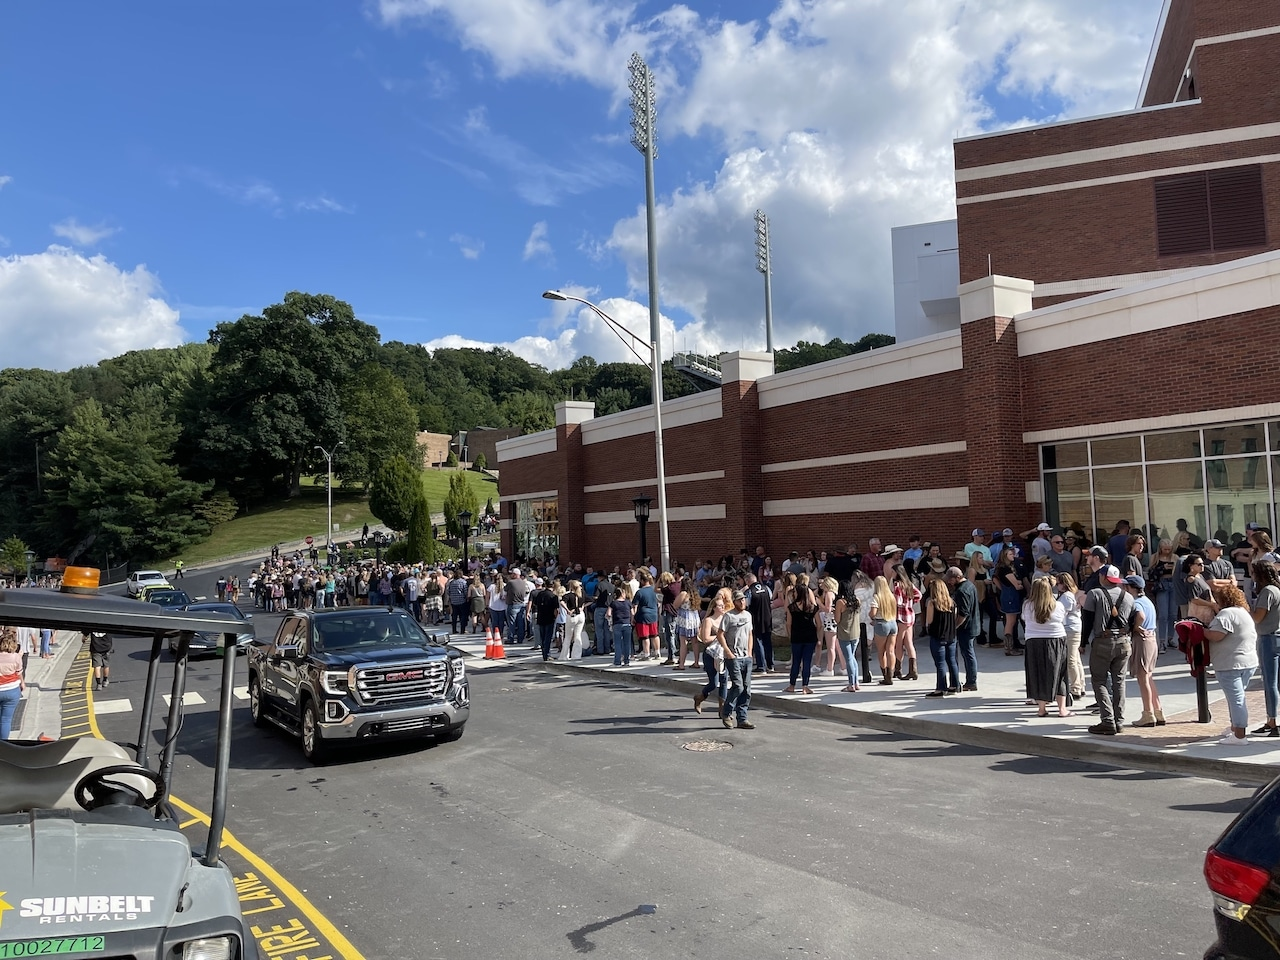 Luke Combs concert at App State - sights & sounds Saturday September 4, 2021